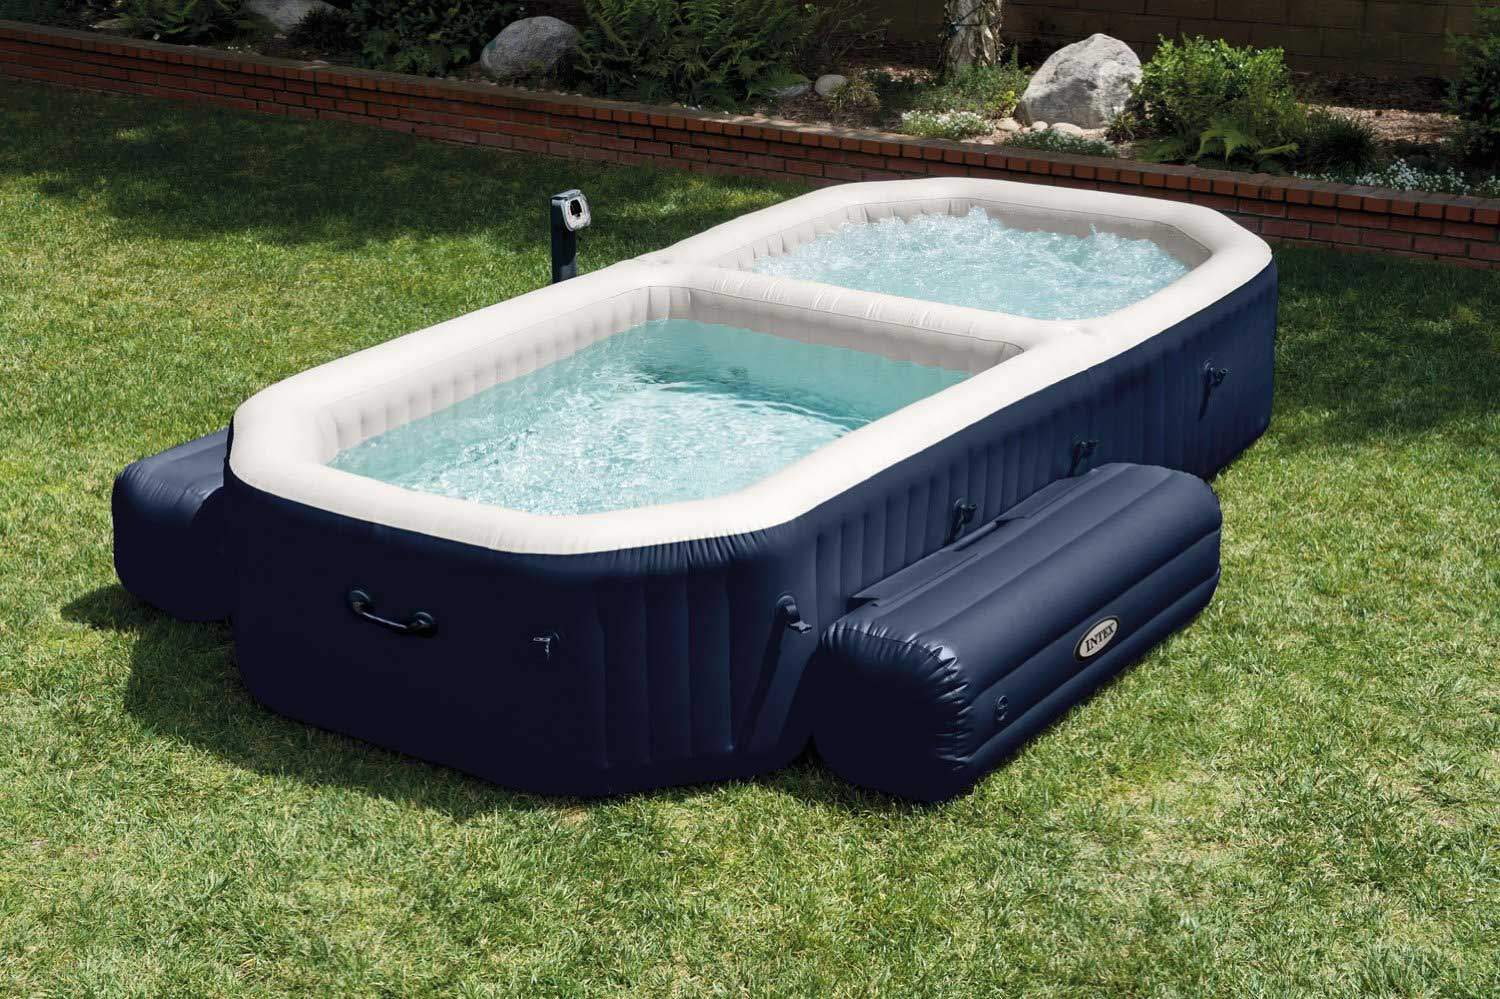 Jacuzzi Pool Deluxe Intex Purespa Bubble Hot Tub And Pool Set Review Best